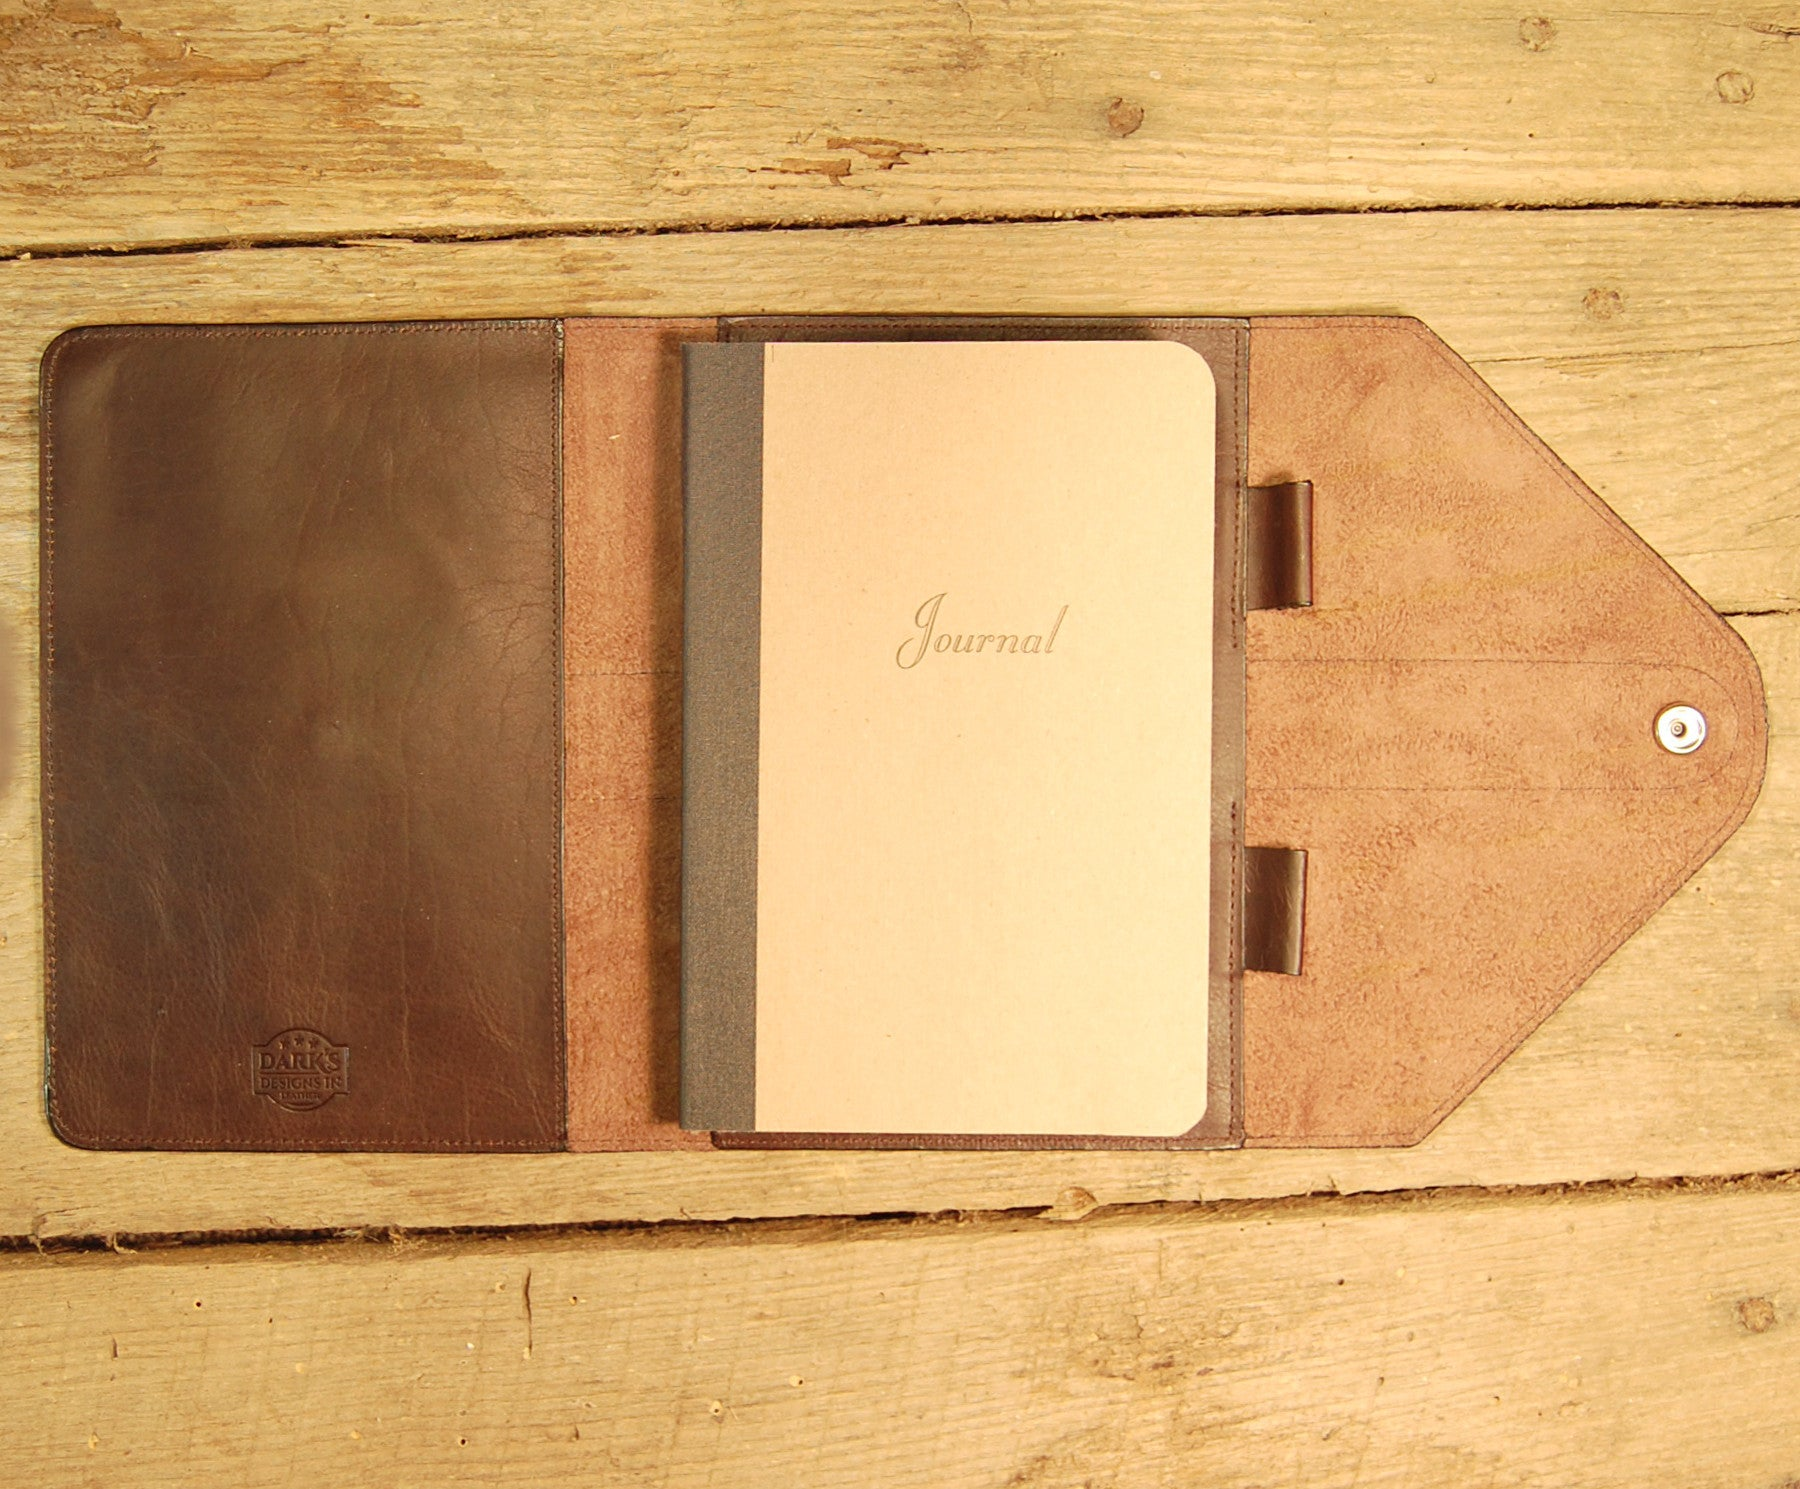 Dark's Leather Journal in Espresso Bison, Interior